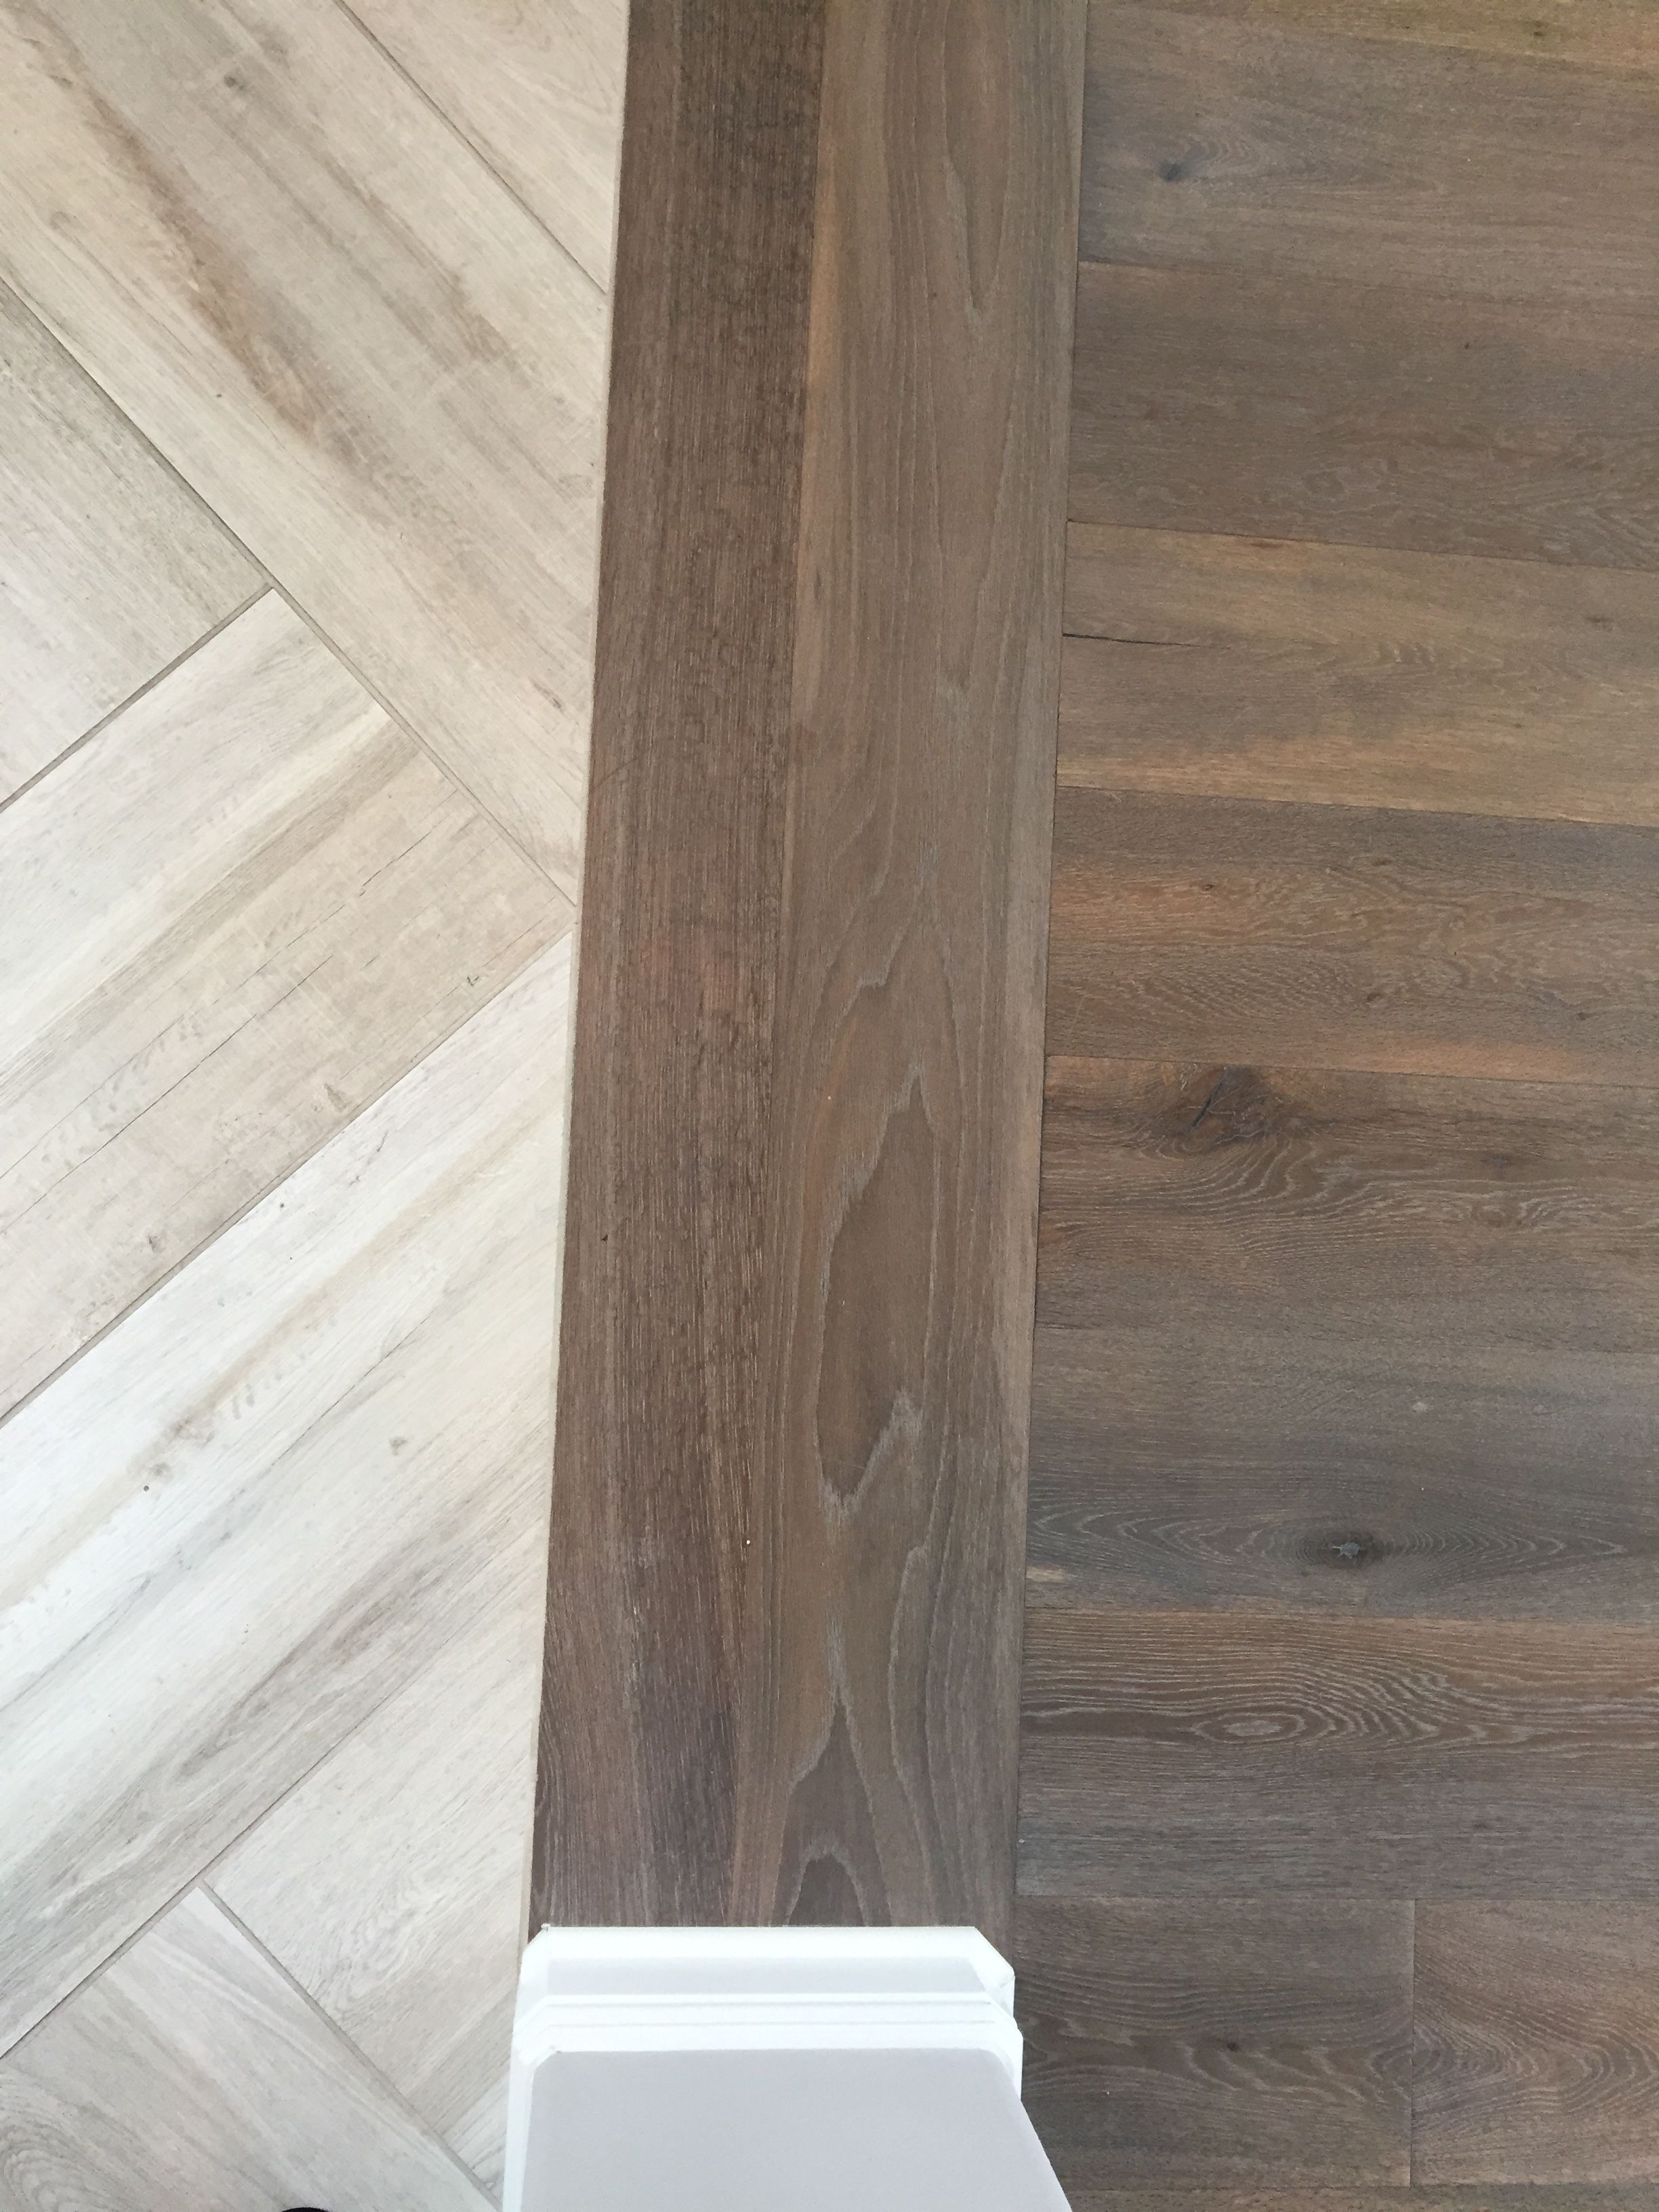 Menards Engineered Hardwood Flooring Of Floor Transition Laminate to Herringbone Tile Pattern Model for Floor Transition Laminate to Herringbone Tile Pattern Herringbone Tile Pattern Herringbone Wood Floor